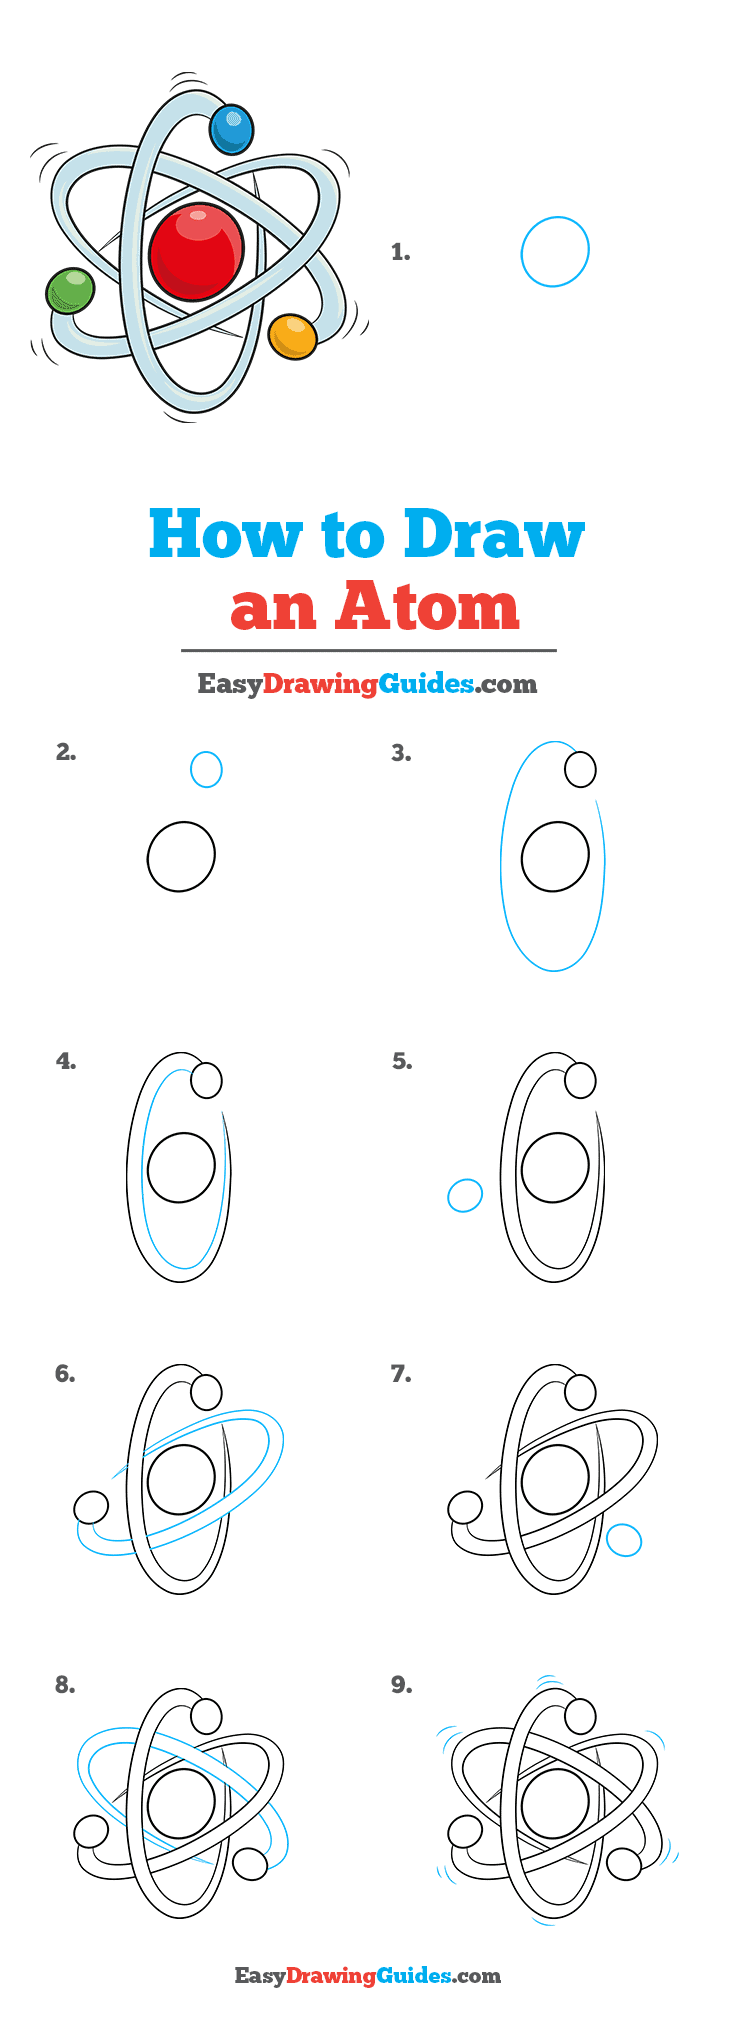 How to Draw an Atom Step by Step Tutorial Image